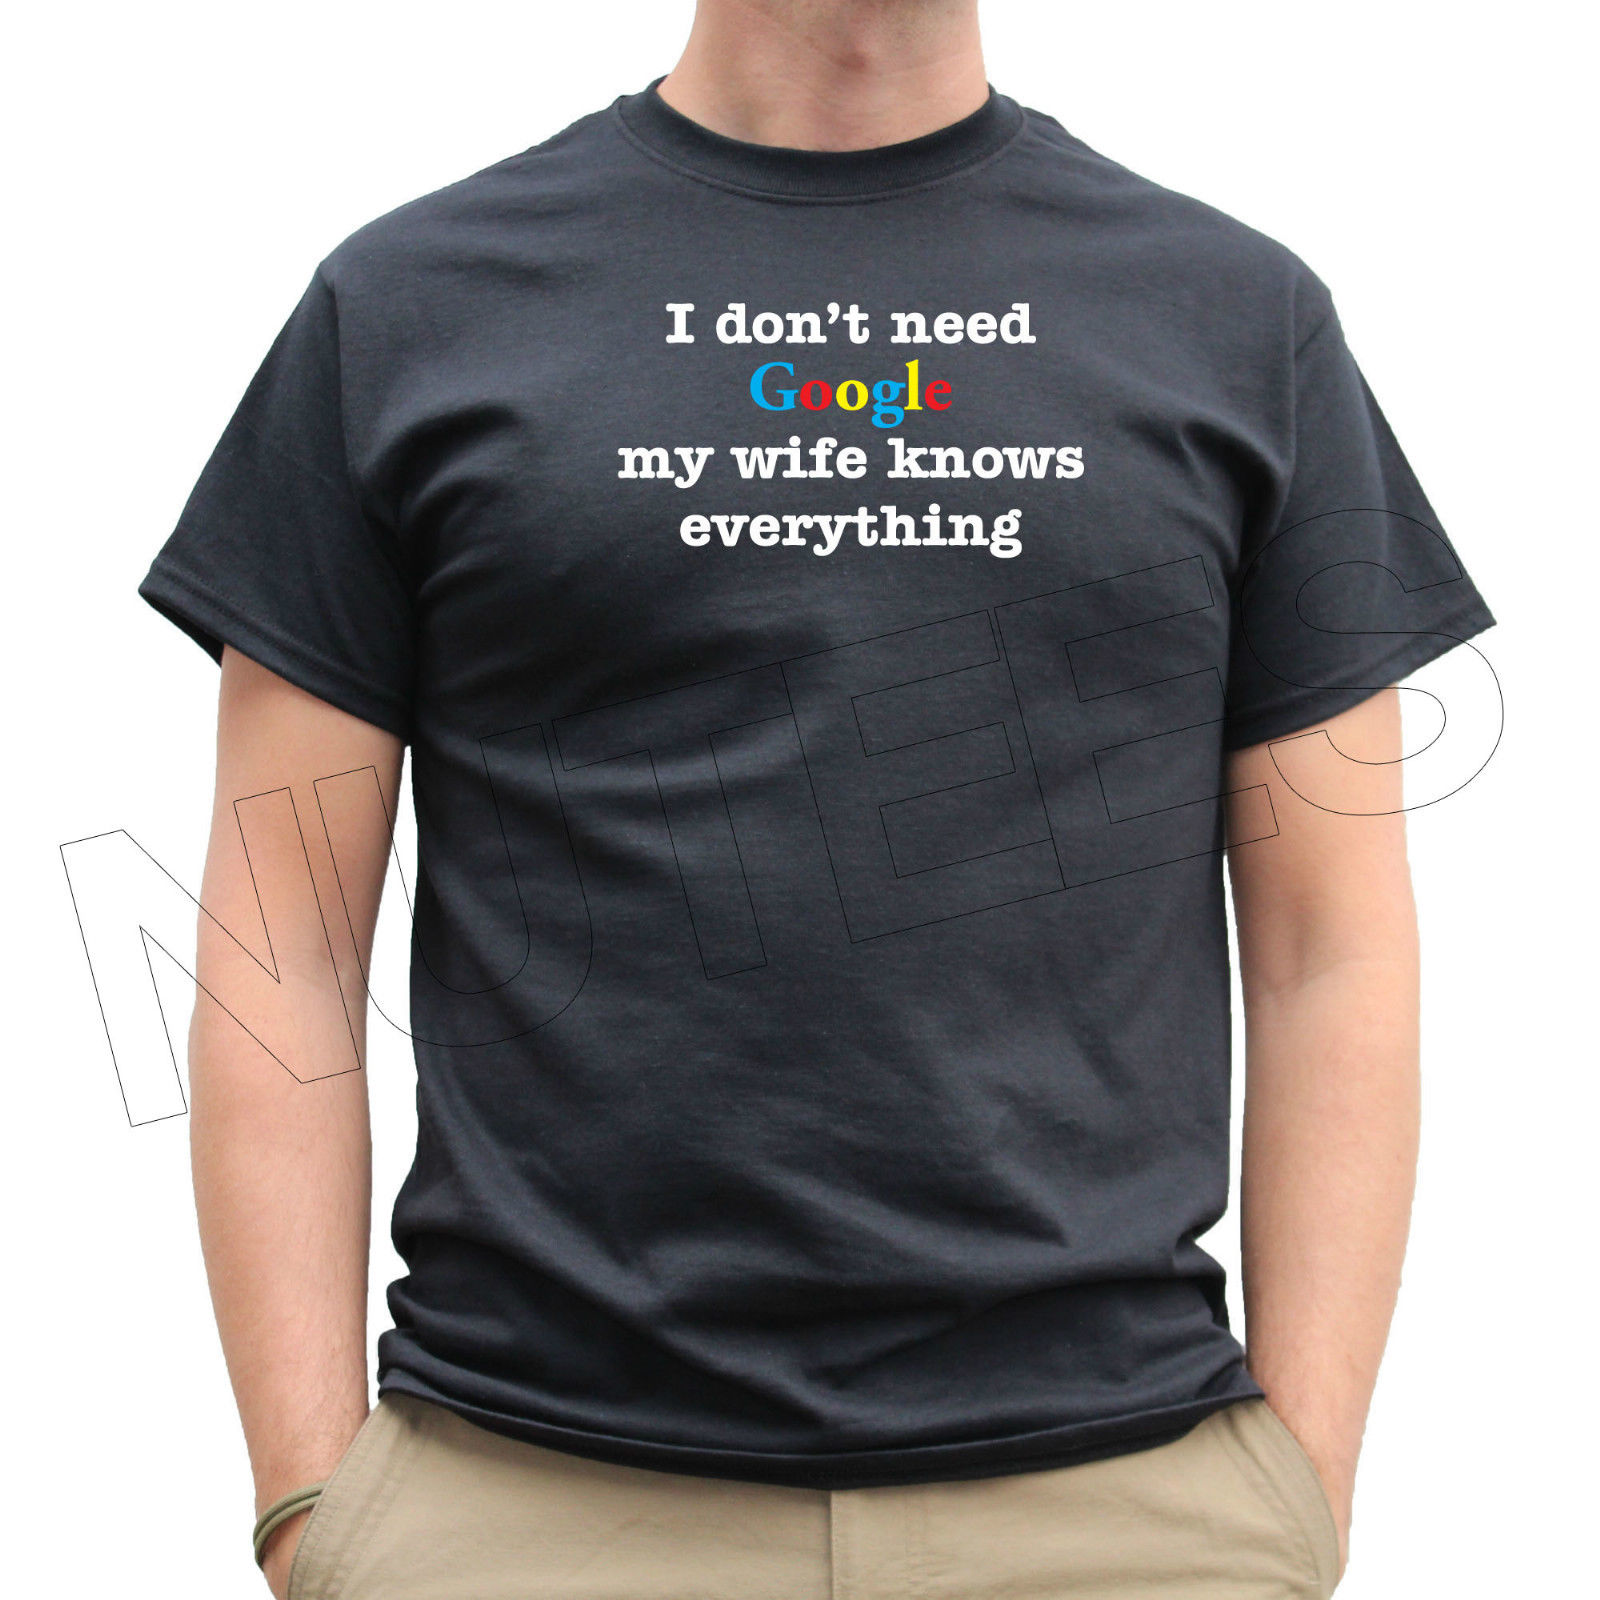 I Don't Need Google My Wife Knows Everything T Shirt S XXL Sizes Cheap wholesale tees,100% Cotton For Man,T shirt printing